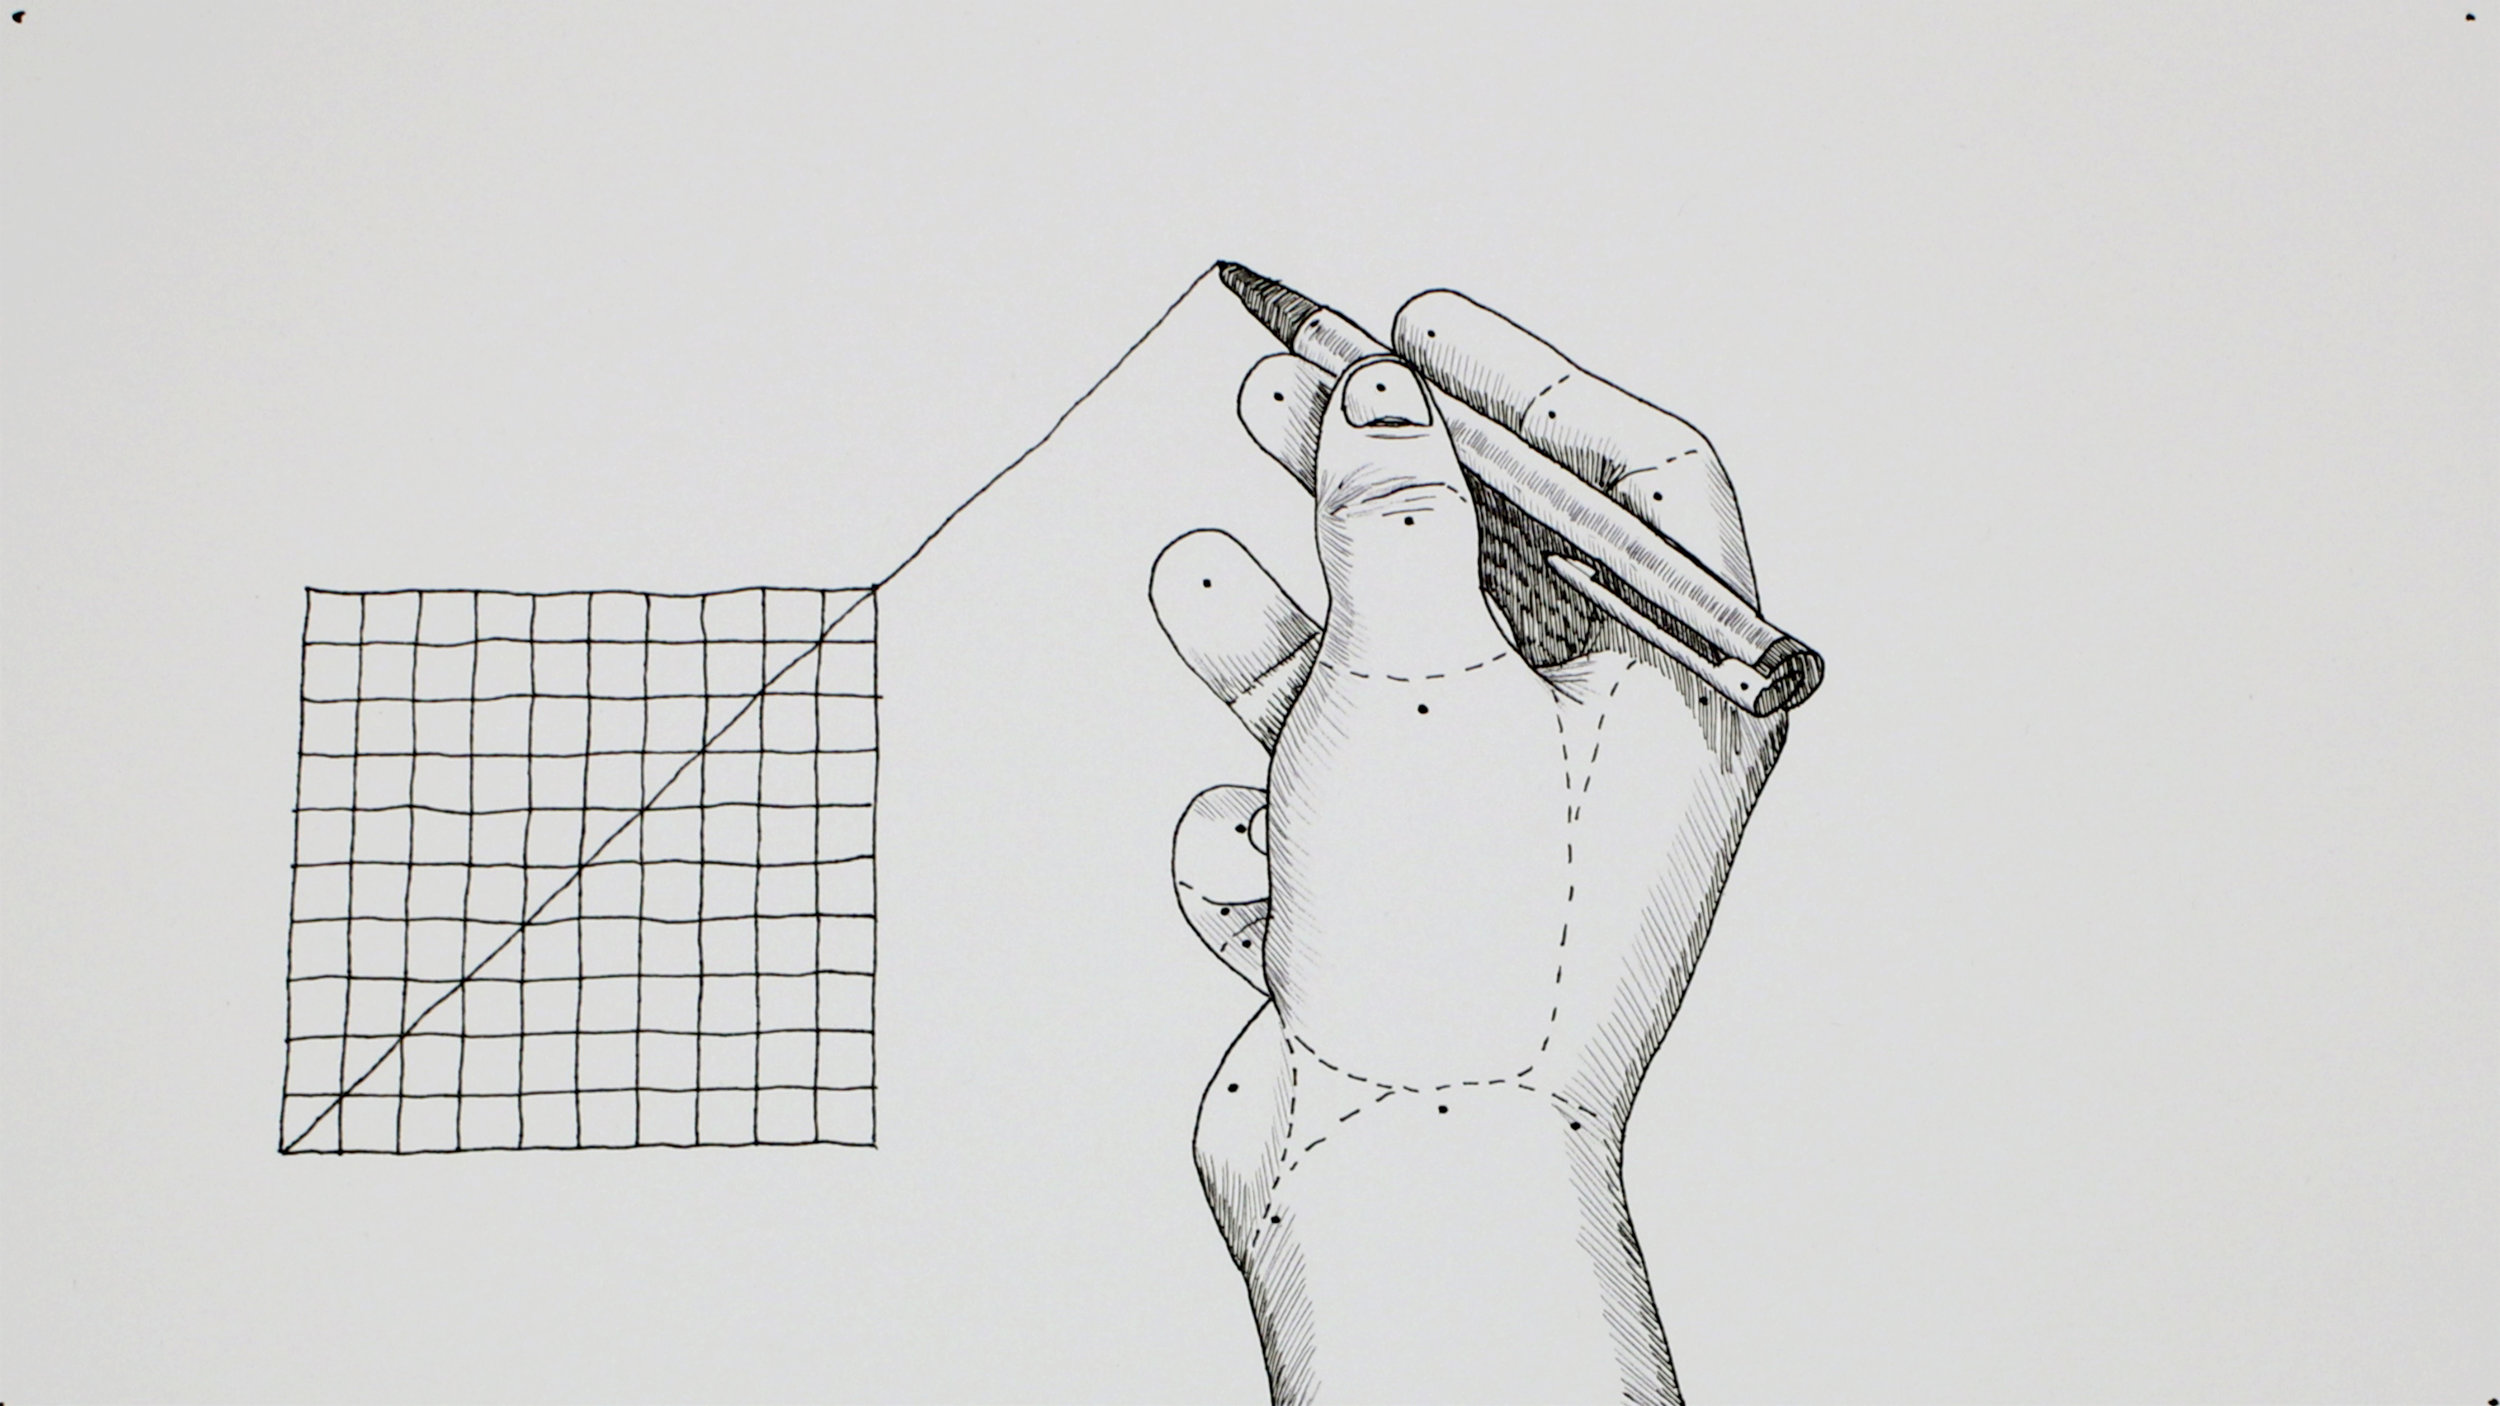 Extrapolate   Director: Johan Rijpma // Japan, The Netherlands   In this hand drawn animation a line is being extrapolated through a grid. When the line surpasses the boundaries of the grid, the process spreads to and reflects on its surroundings. Beyond each boundary the extrapolation of movement is causing deformation in a systematic but speculative way.